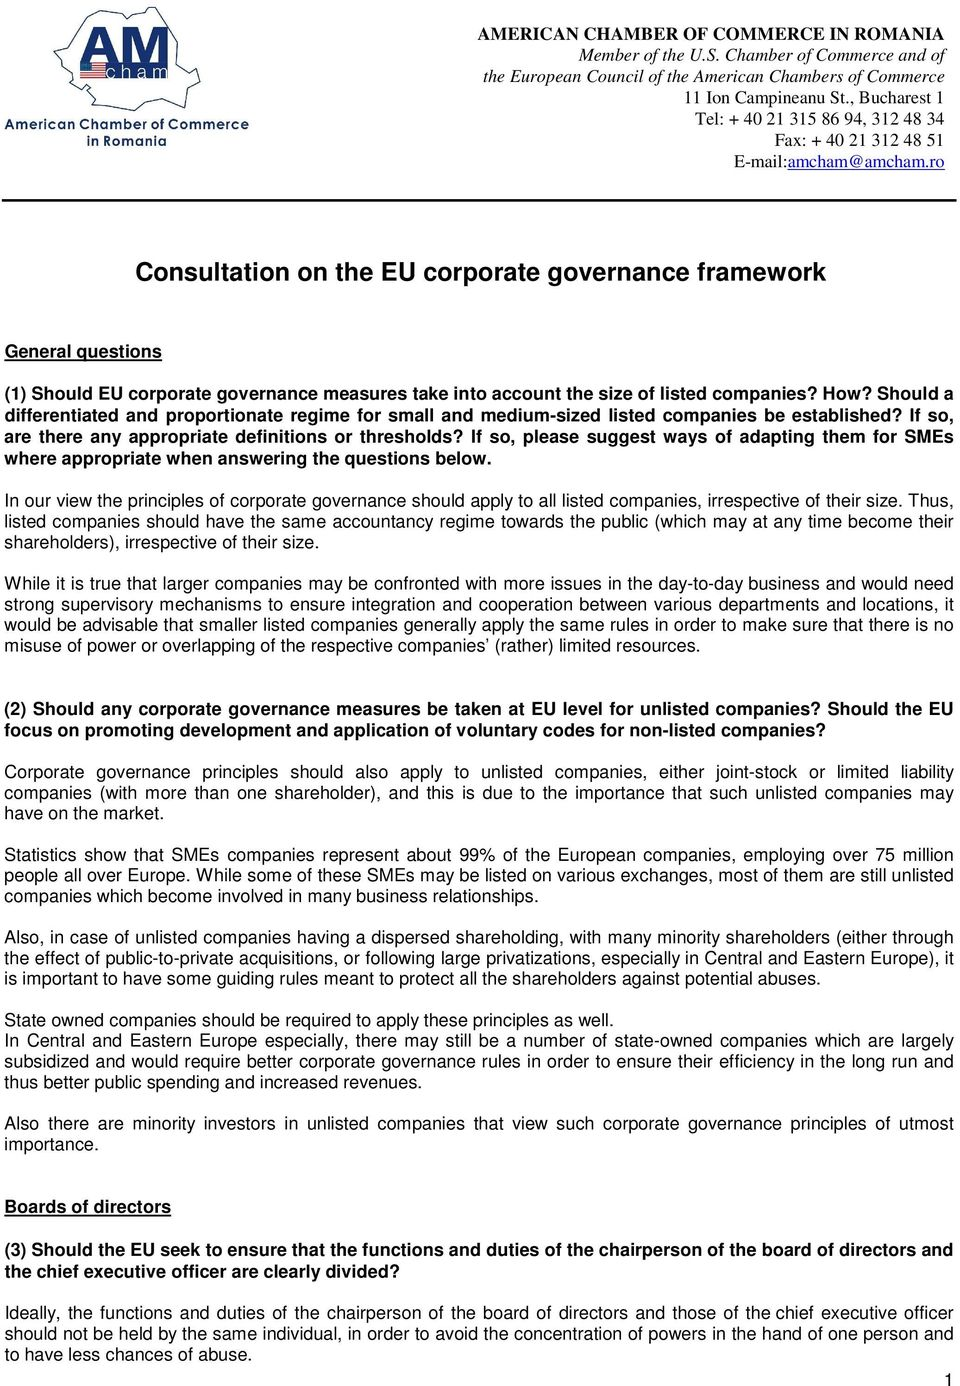 ro Consultation on the EU corporate governance framework General questions (1) Should EU corporate governance measures take into account the size of listed companies? How?